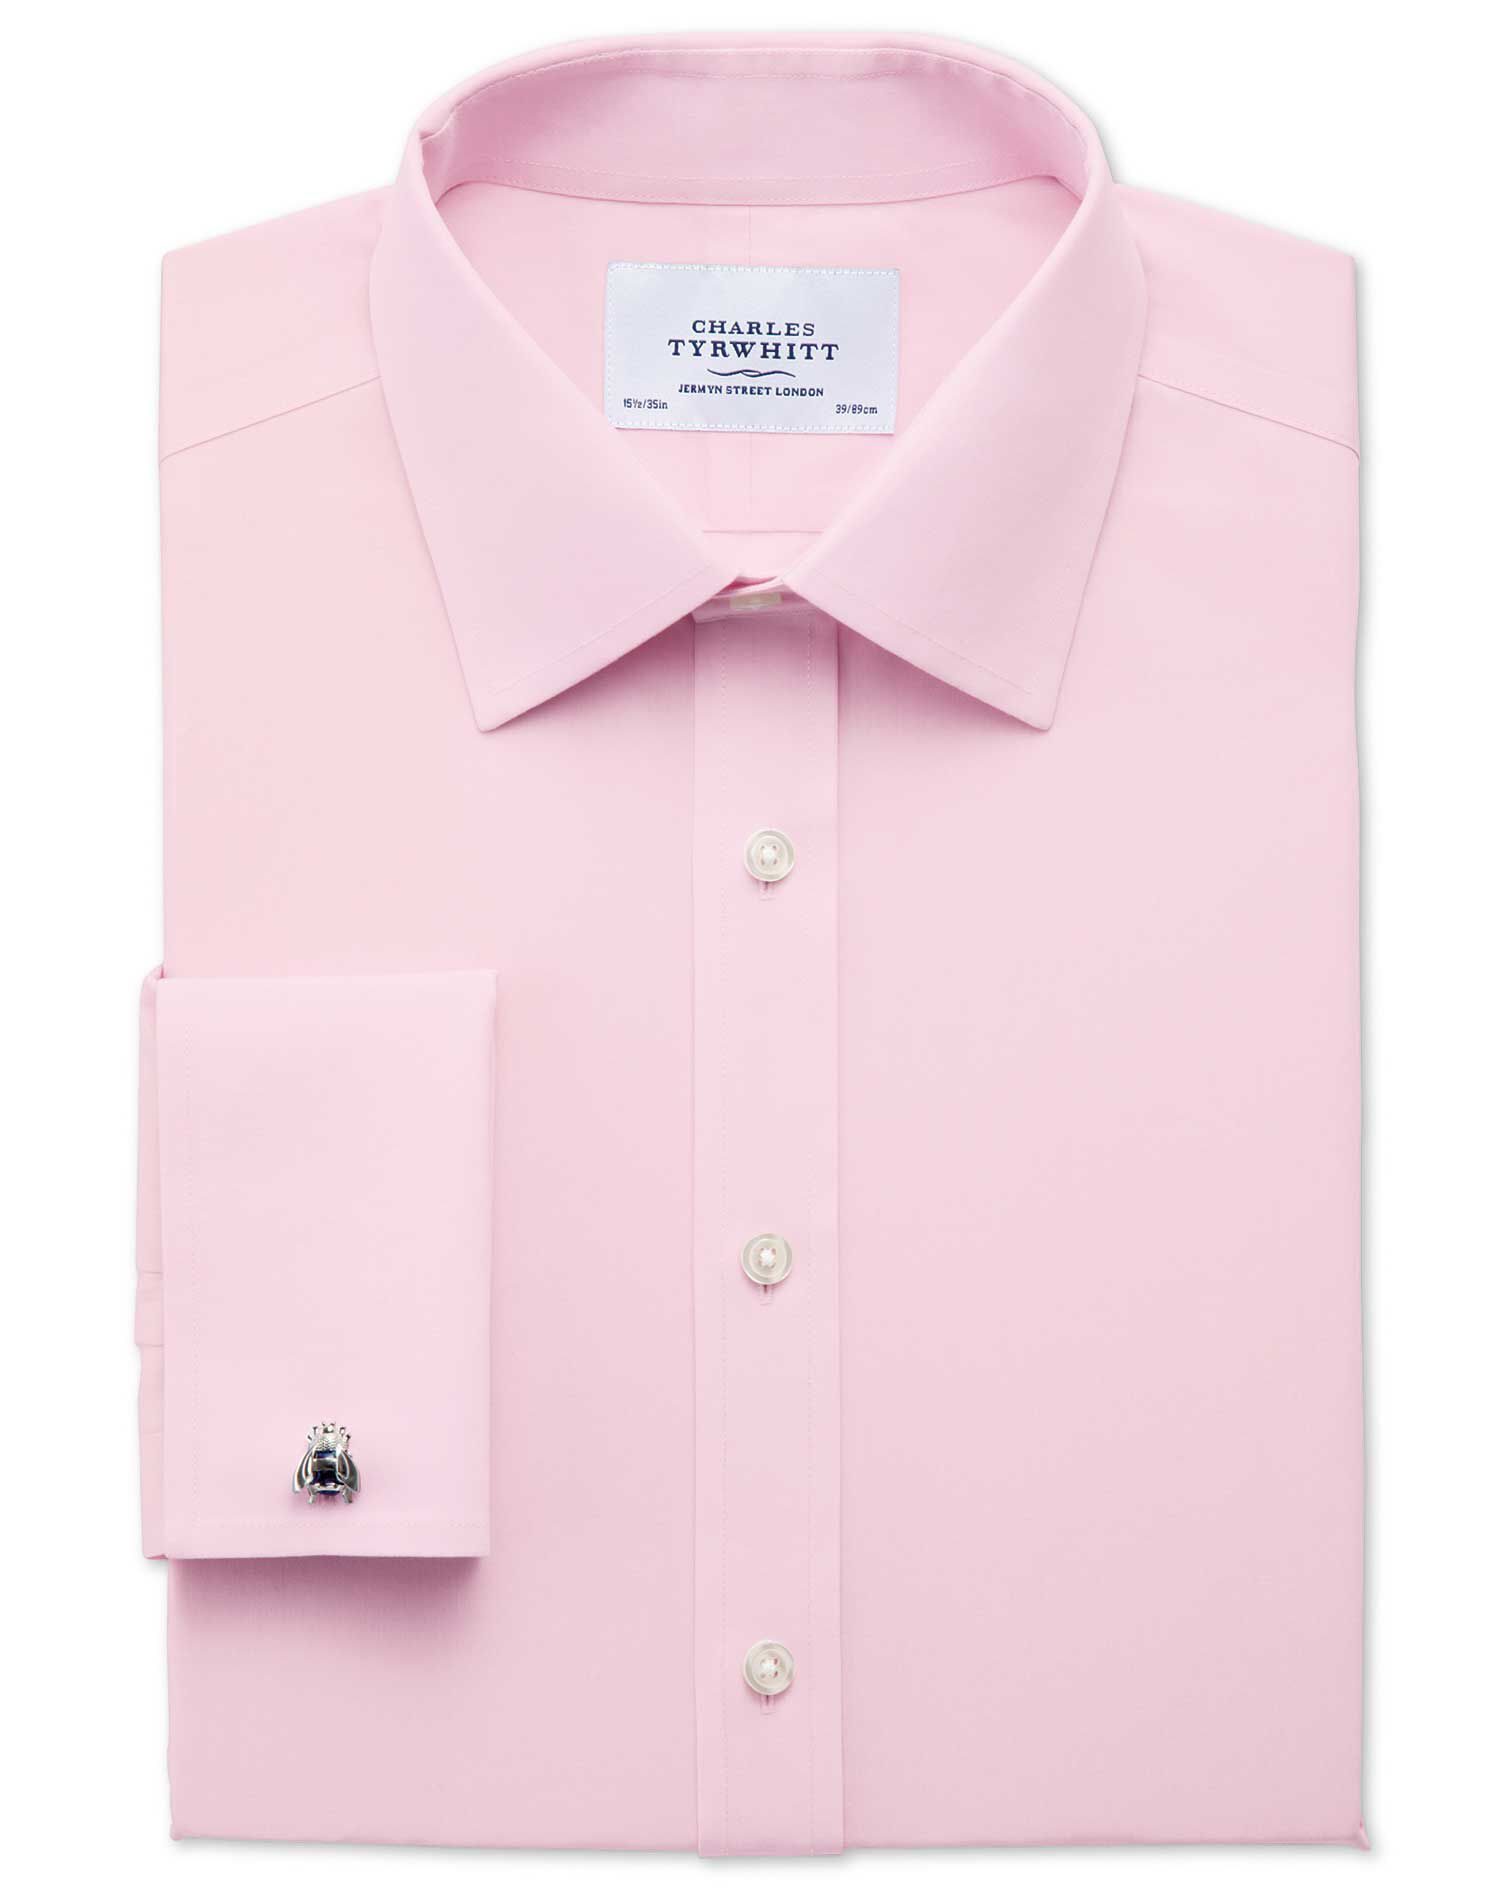 Slim Fit Non-Iron Poplin Light Pink Cotton Formal Shirt Single Cuff Size 15.5/32 by Charles Tyrwhitt